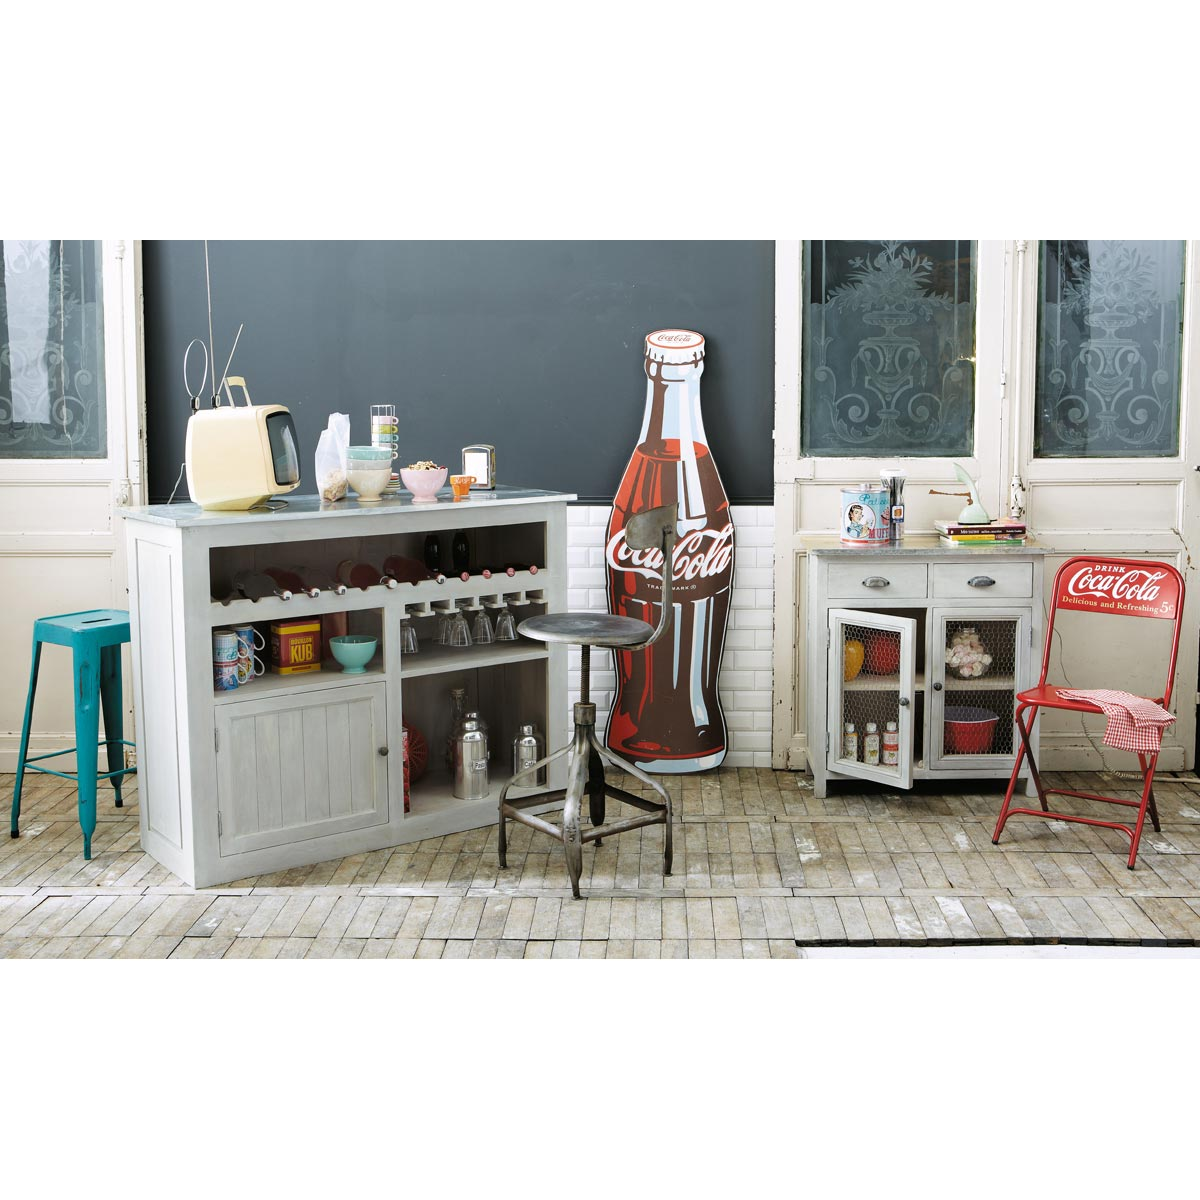 Mobile bar arredamento shabby - Mueble para casa ...